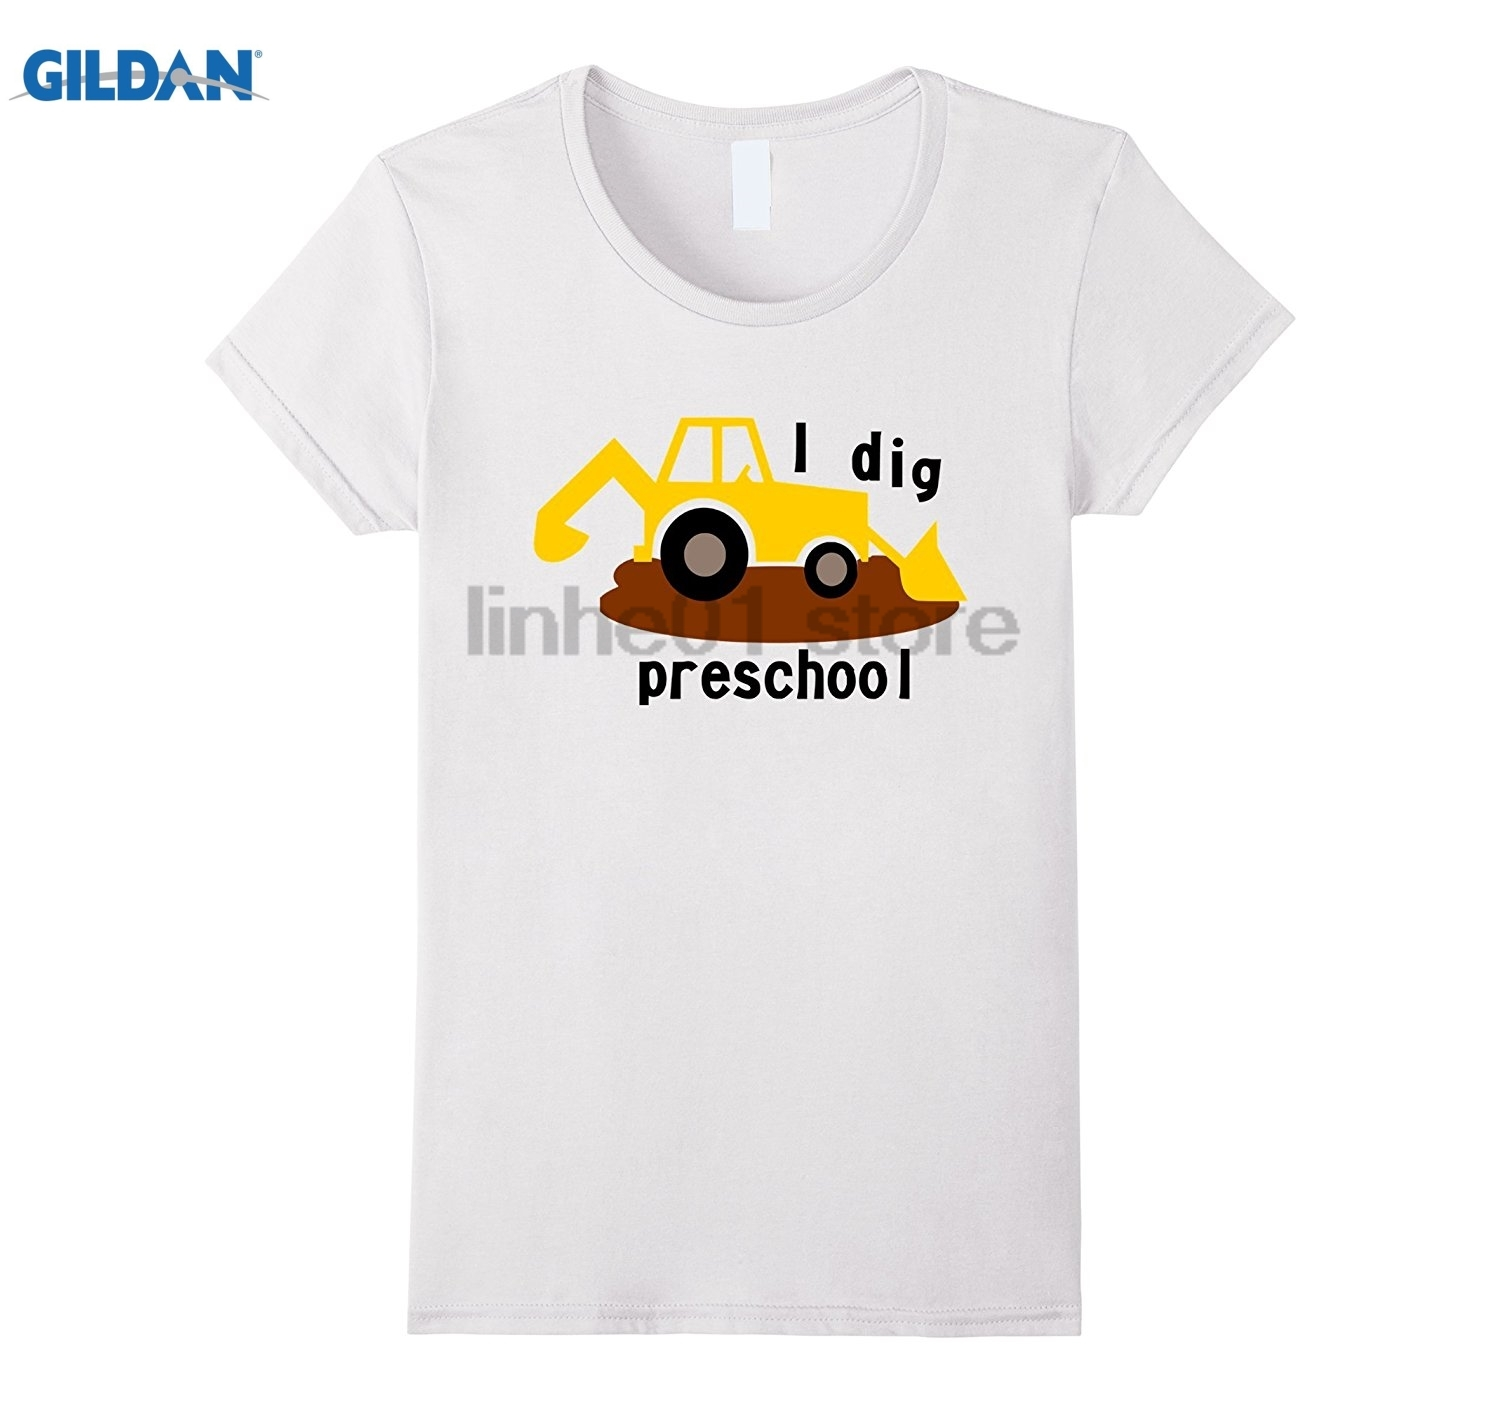 GILDAN I Dig Preschool T-shirt Mothers Day Ms. T-shirt Hot Womens T-shirt